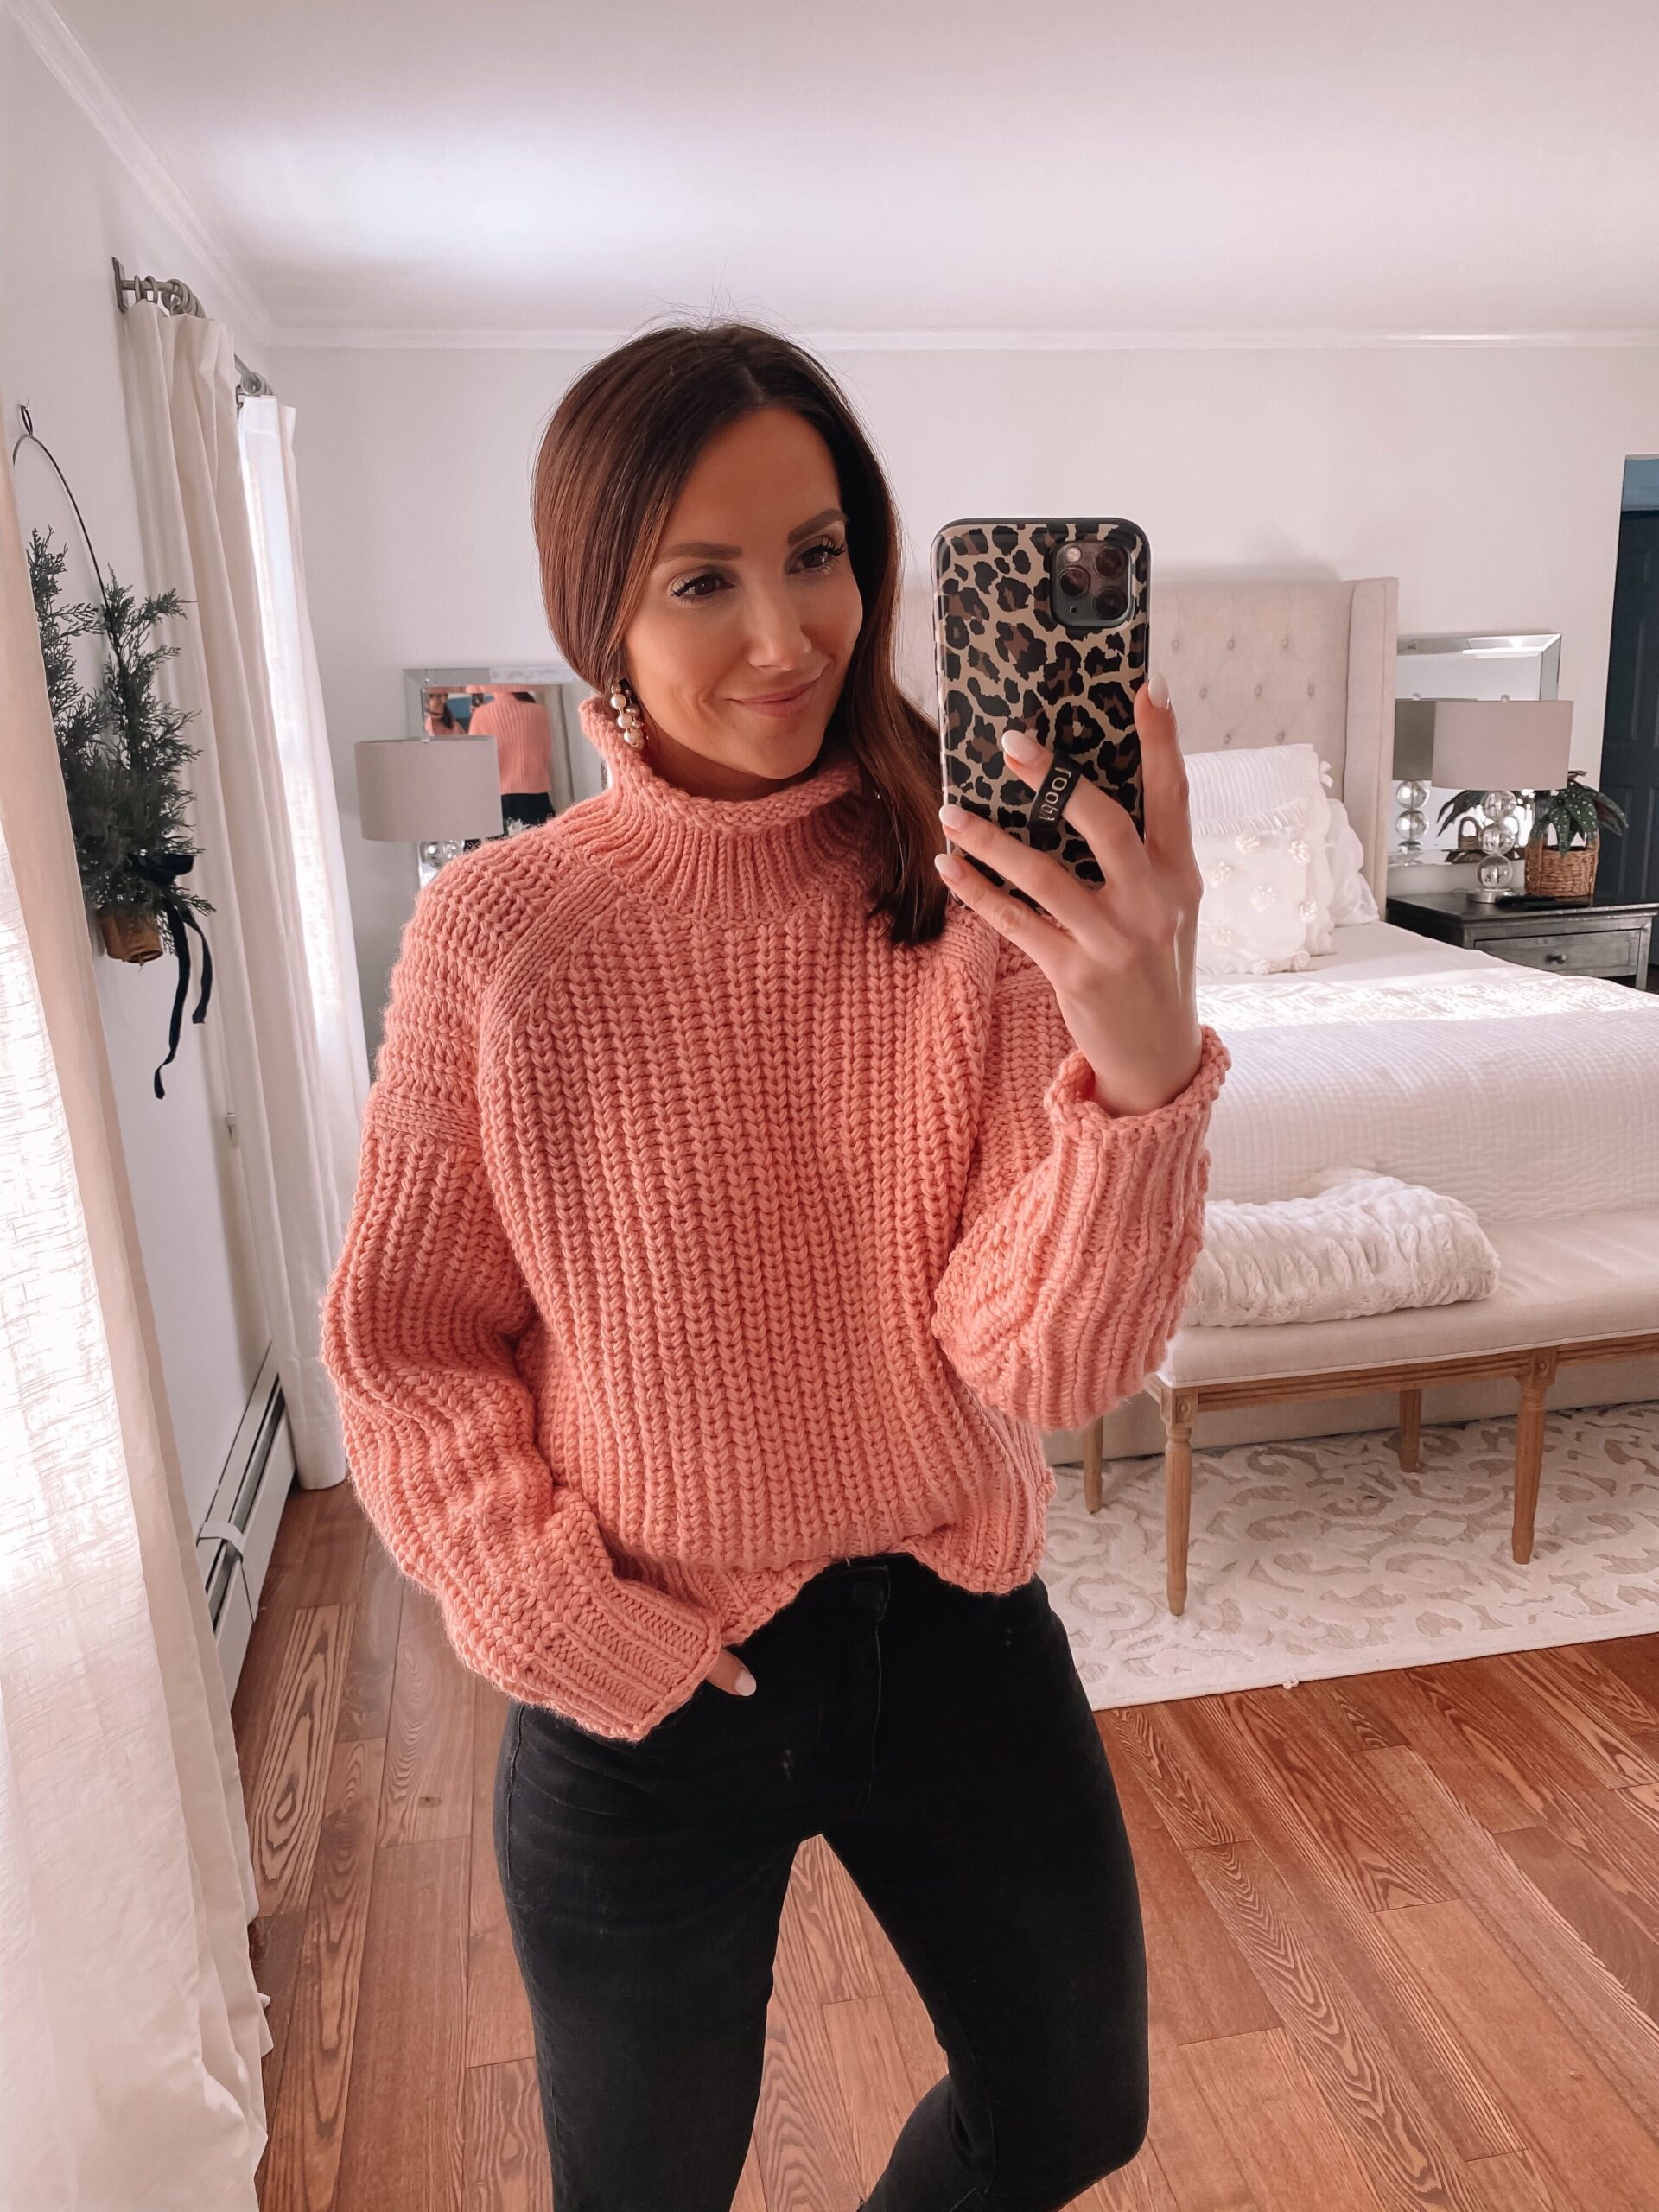 h&m pink sweater, sweater and jeans